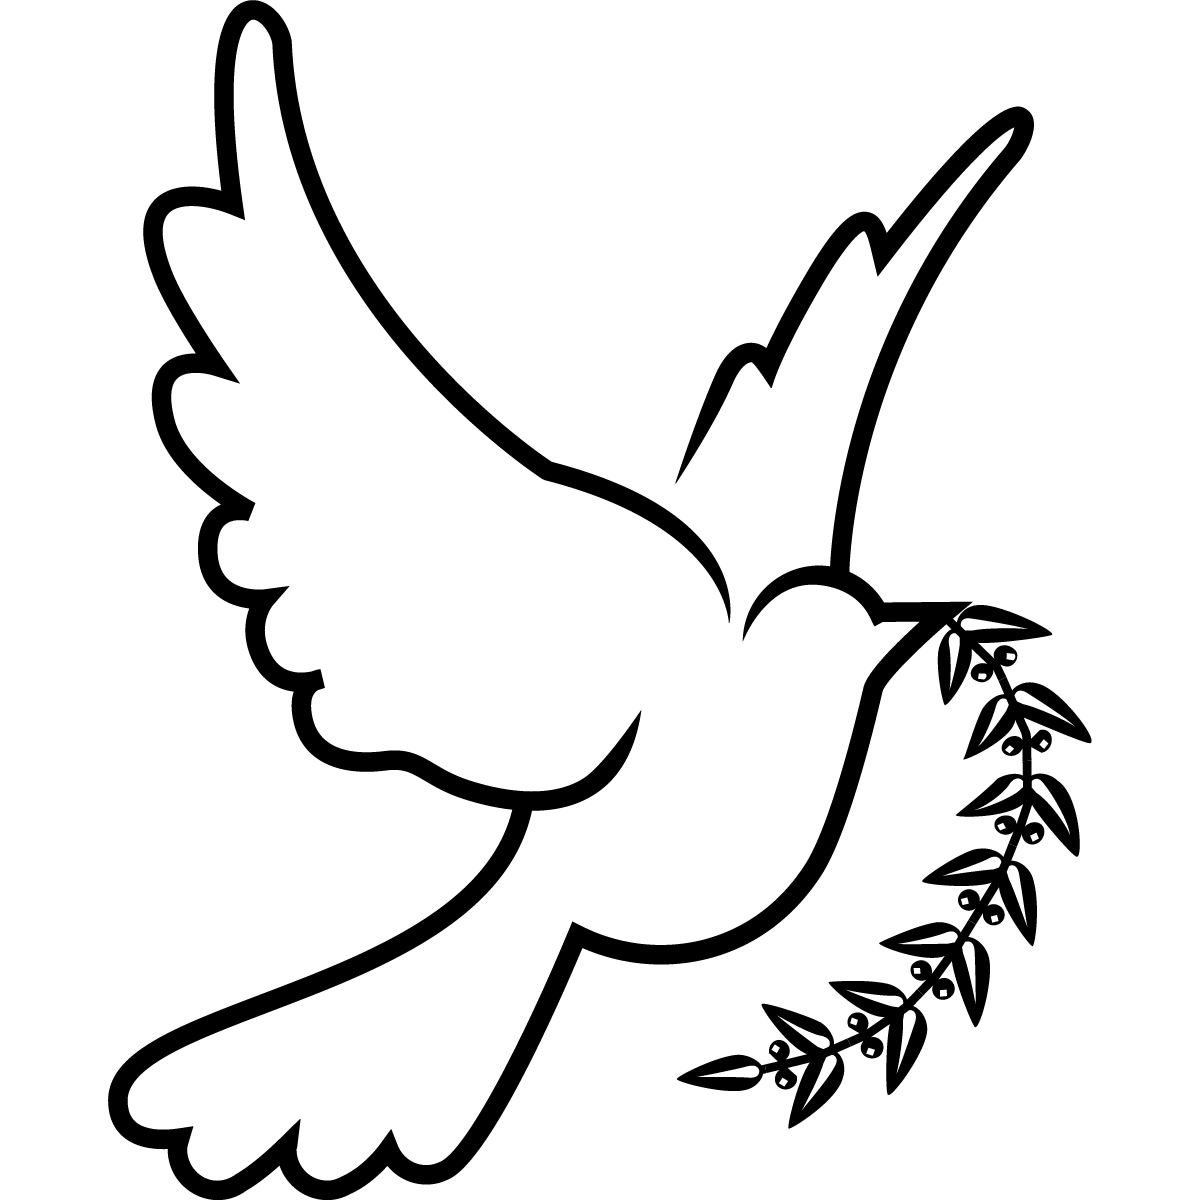 Love doves drawing clipart black and white vector freeuse download Dove Birds Drawings - ClipArt Best | Dove Drawings | Holy spirit ... vector freeuse download